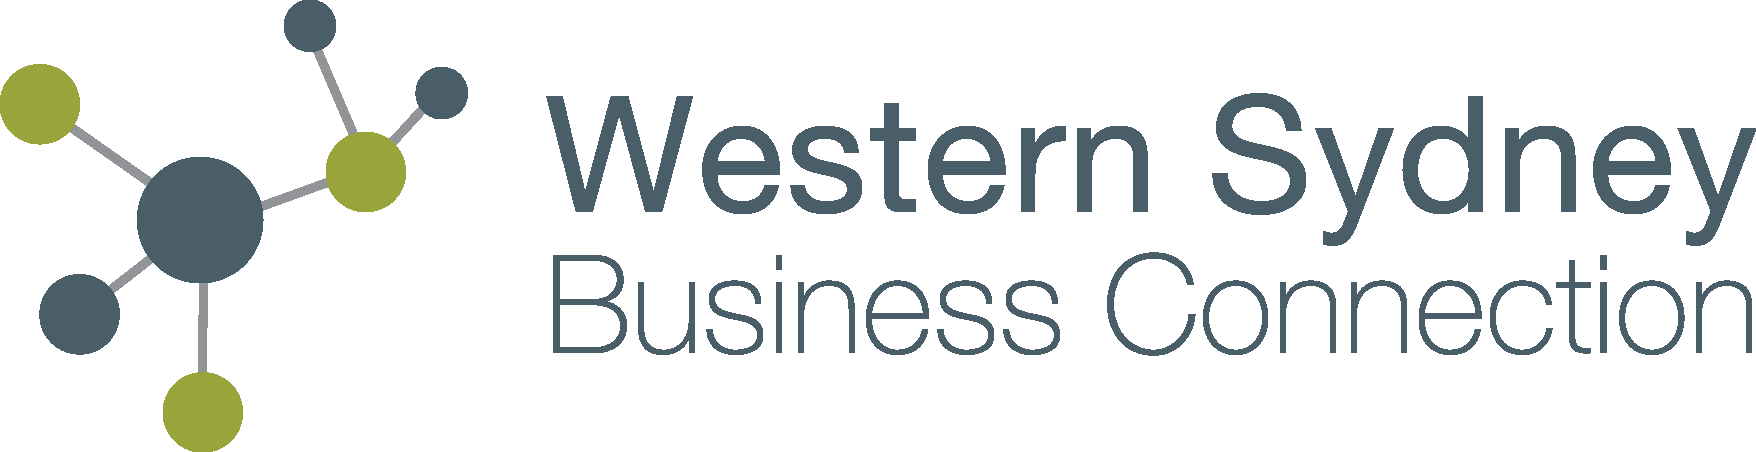 Western Sydney Business Conection